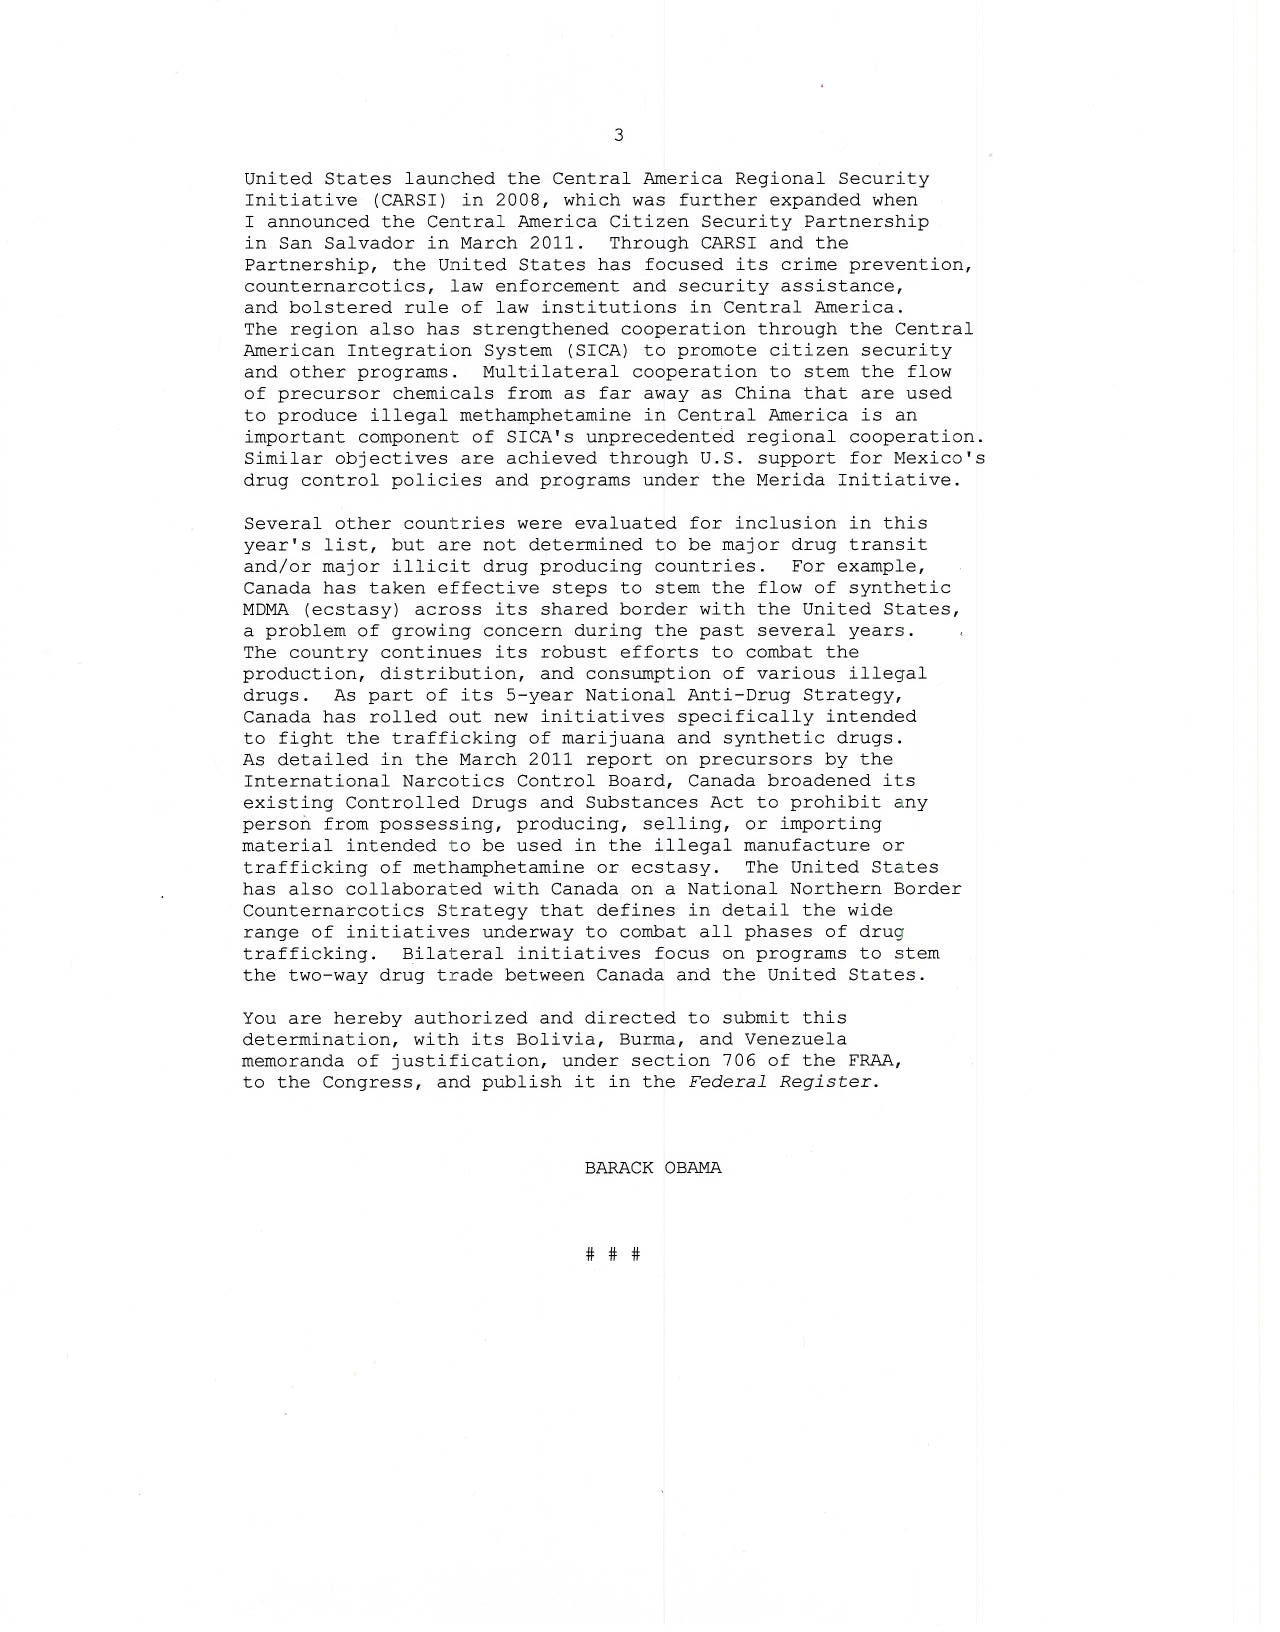 2012 White House Presidential Determination: Memorandum of